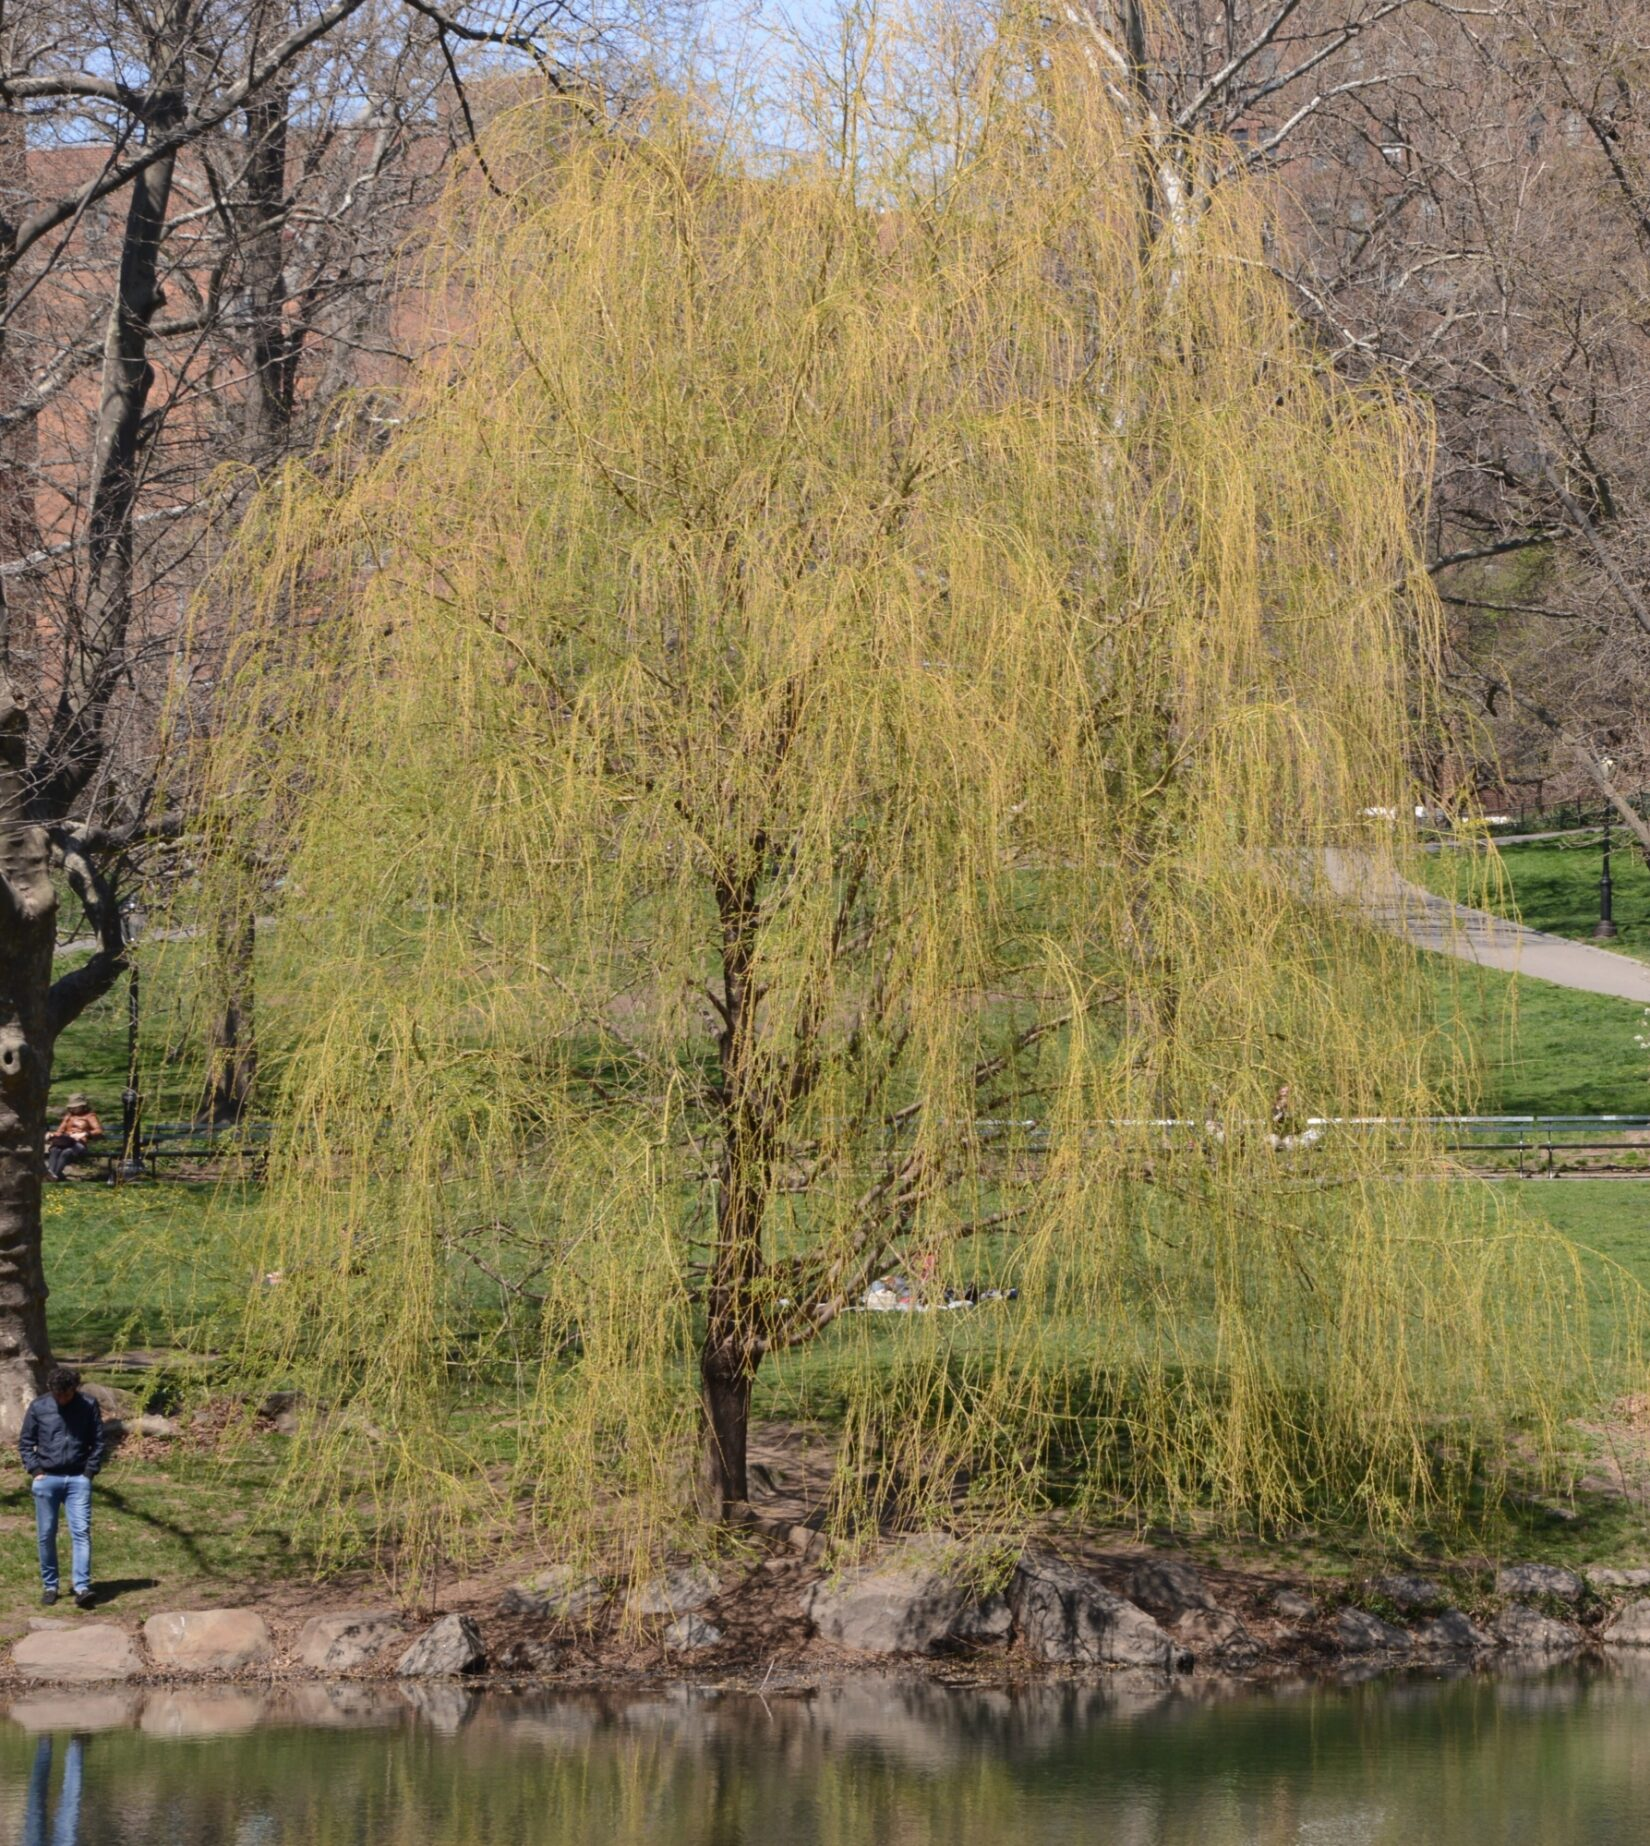 A full view of a weeping willow with drooping yellow branches